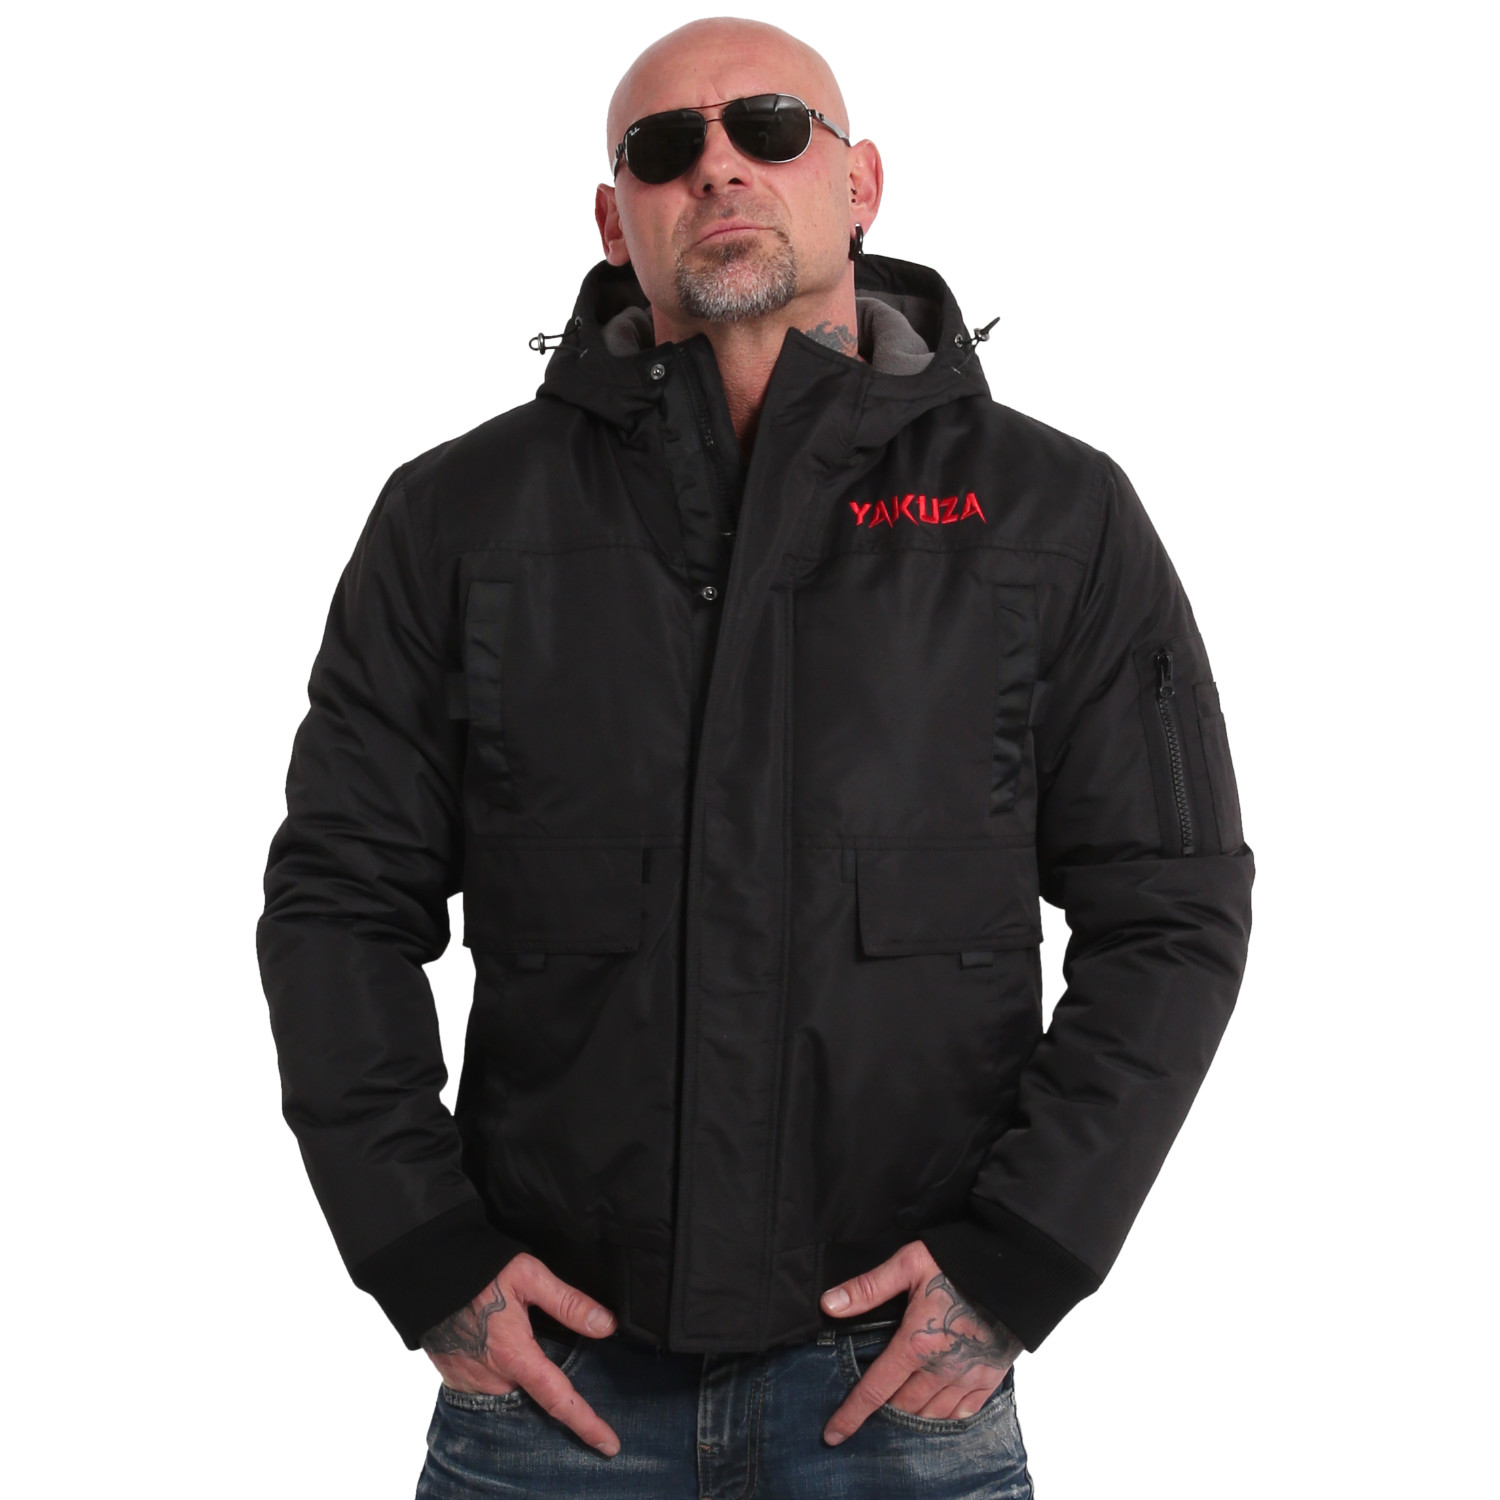 Nippon Signz Ultimate Winter Jacket